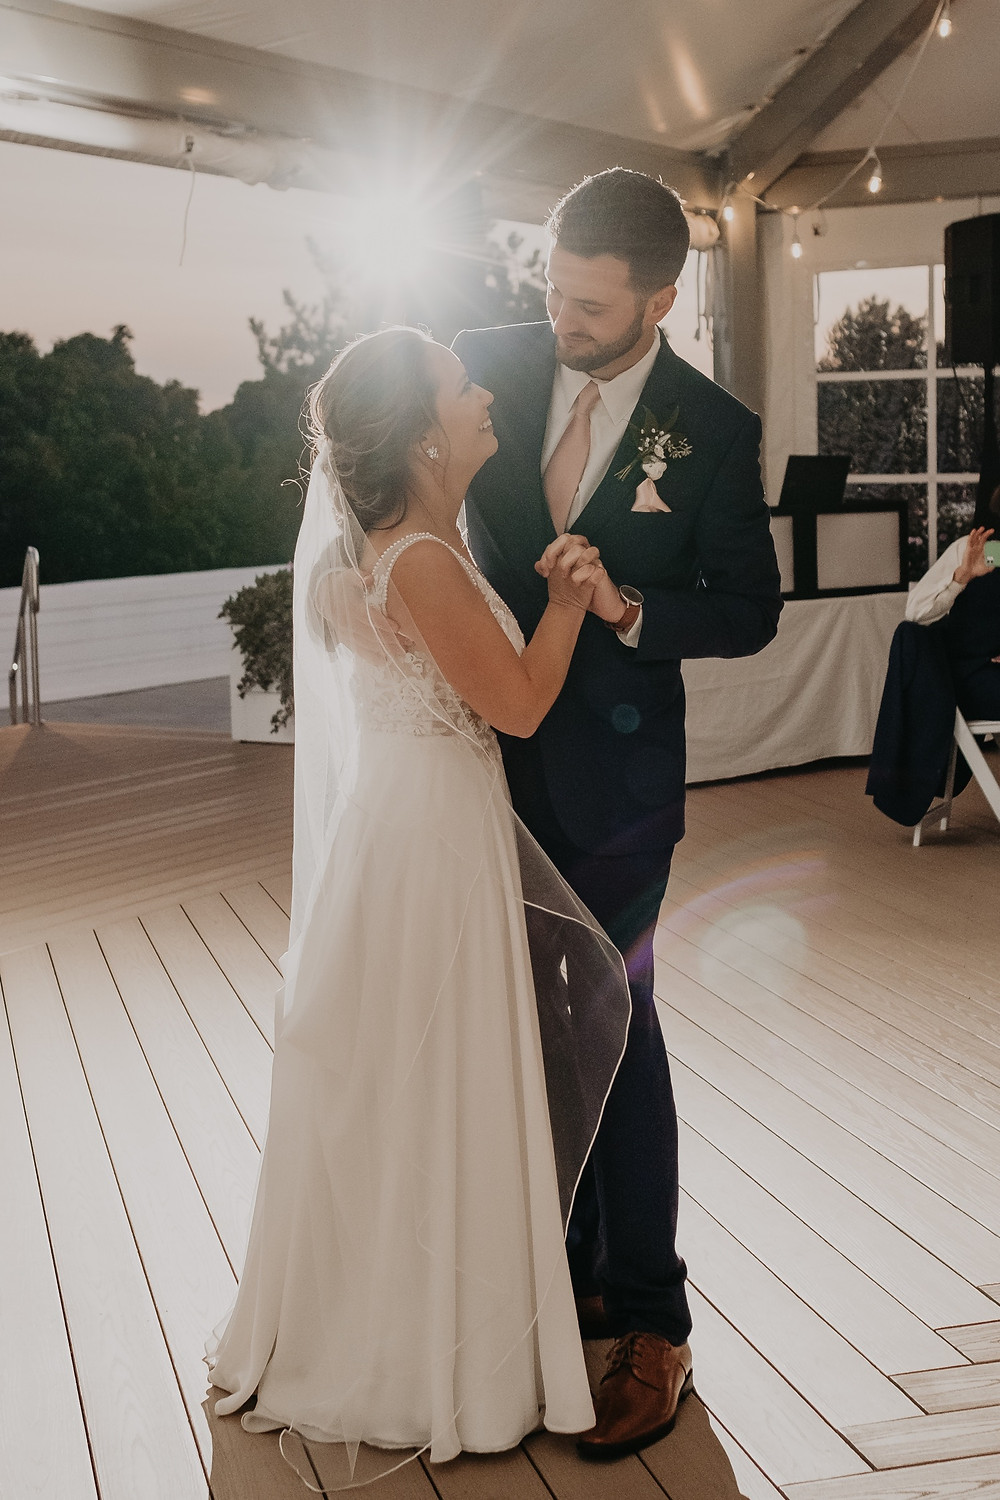 Bride and groom dance together at wedding. Photographed by Nicole Leanne Photography.